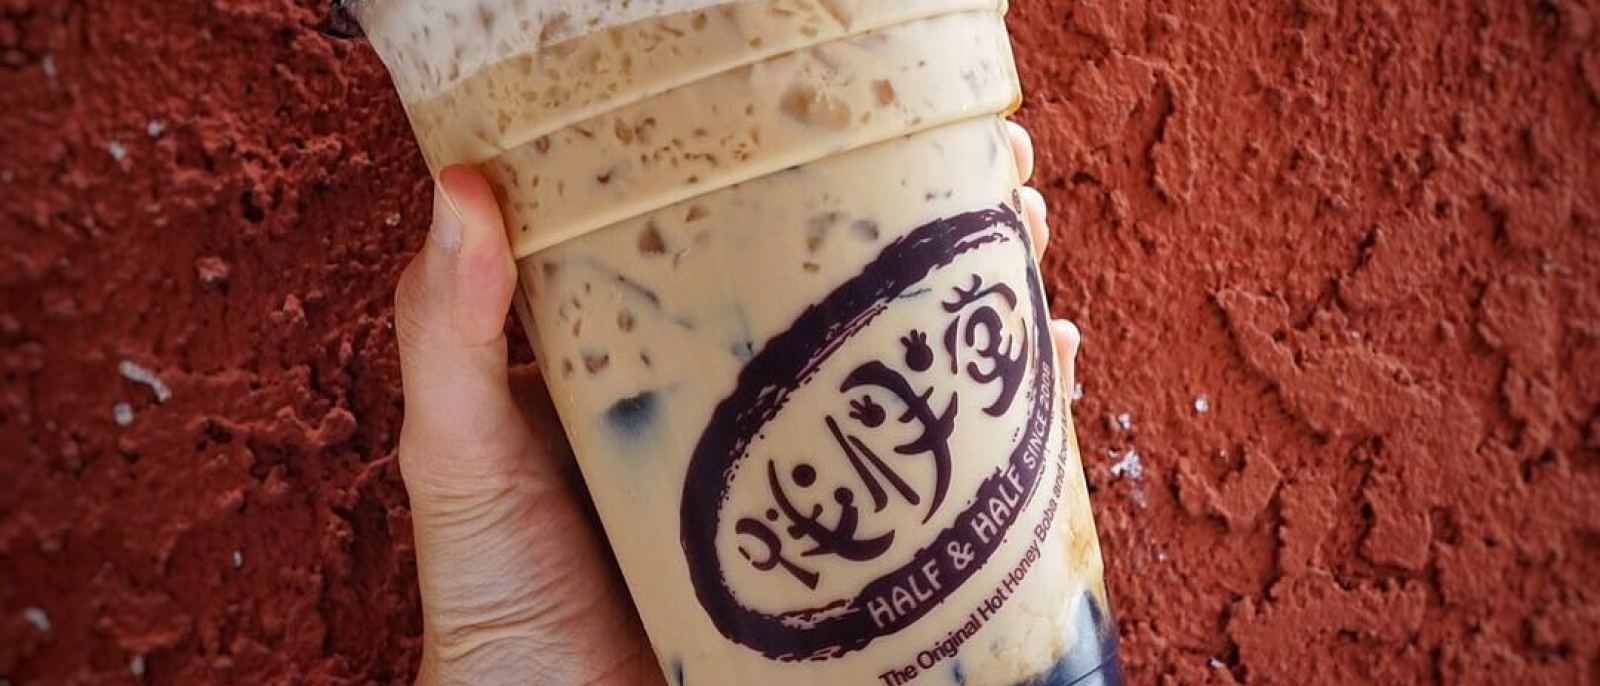 Oolong milk tea with grass jelly and honey boba at Half & Half Tea House in San Gabriel | Instagram by @funfactfoodie